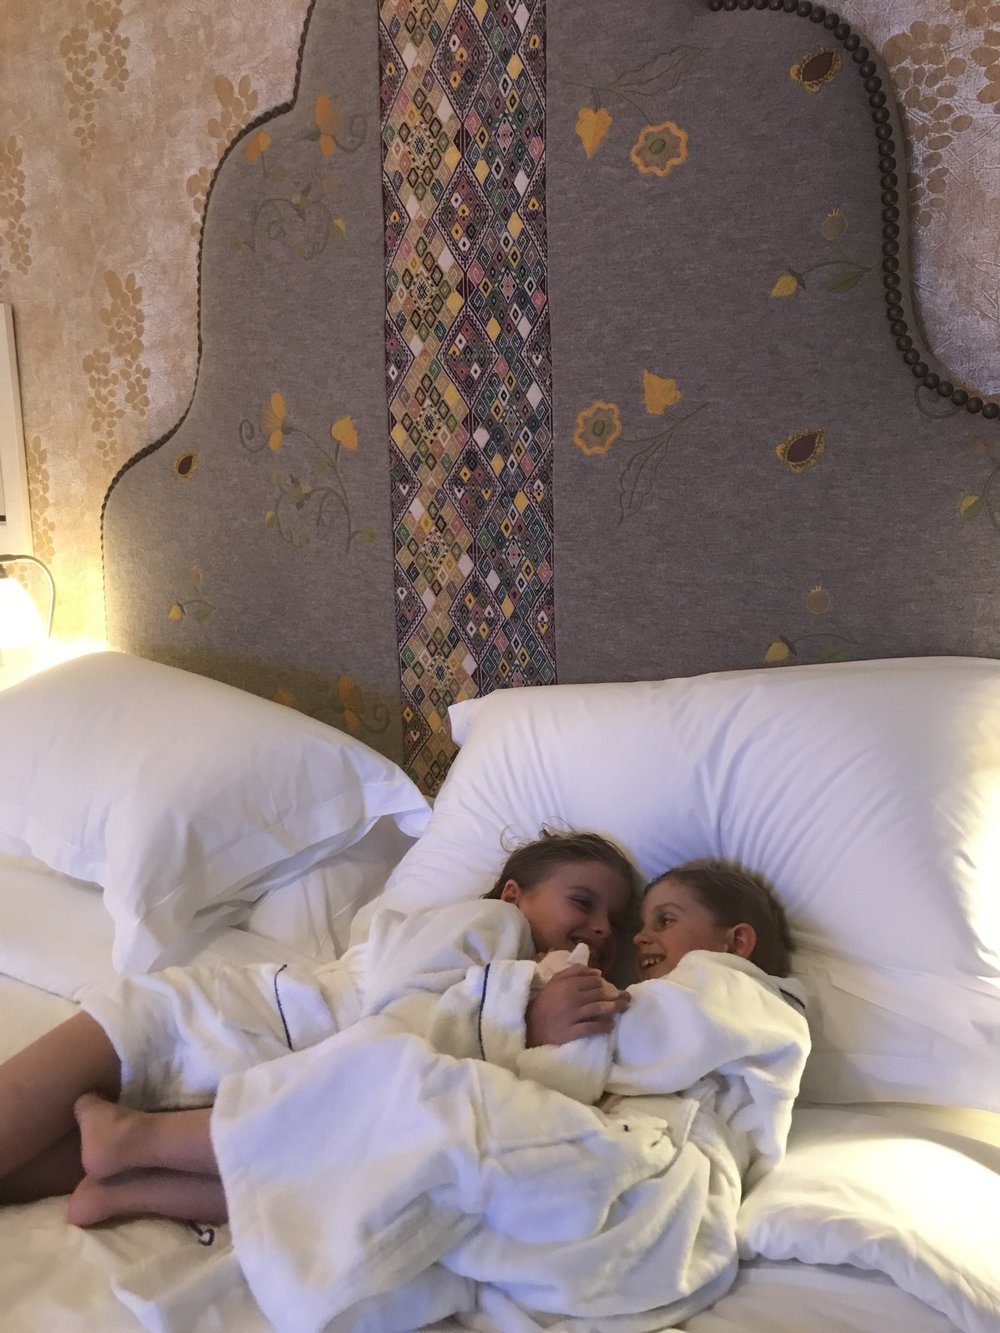 Amenities for the littles at Firmdale's new  Whitby Hotel  in New York: Robes, slippers, fresh popcorn, and movies.